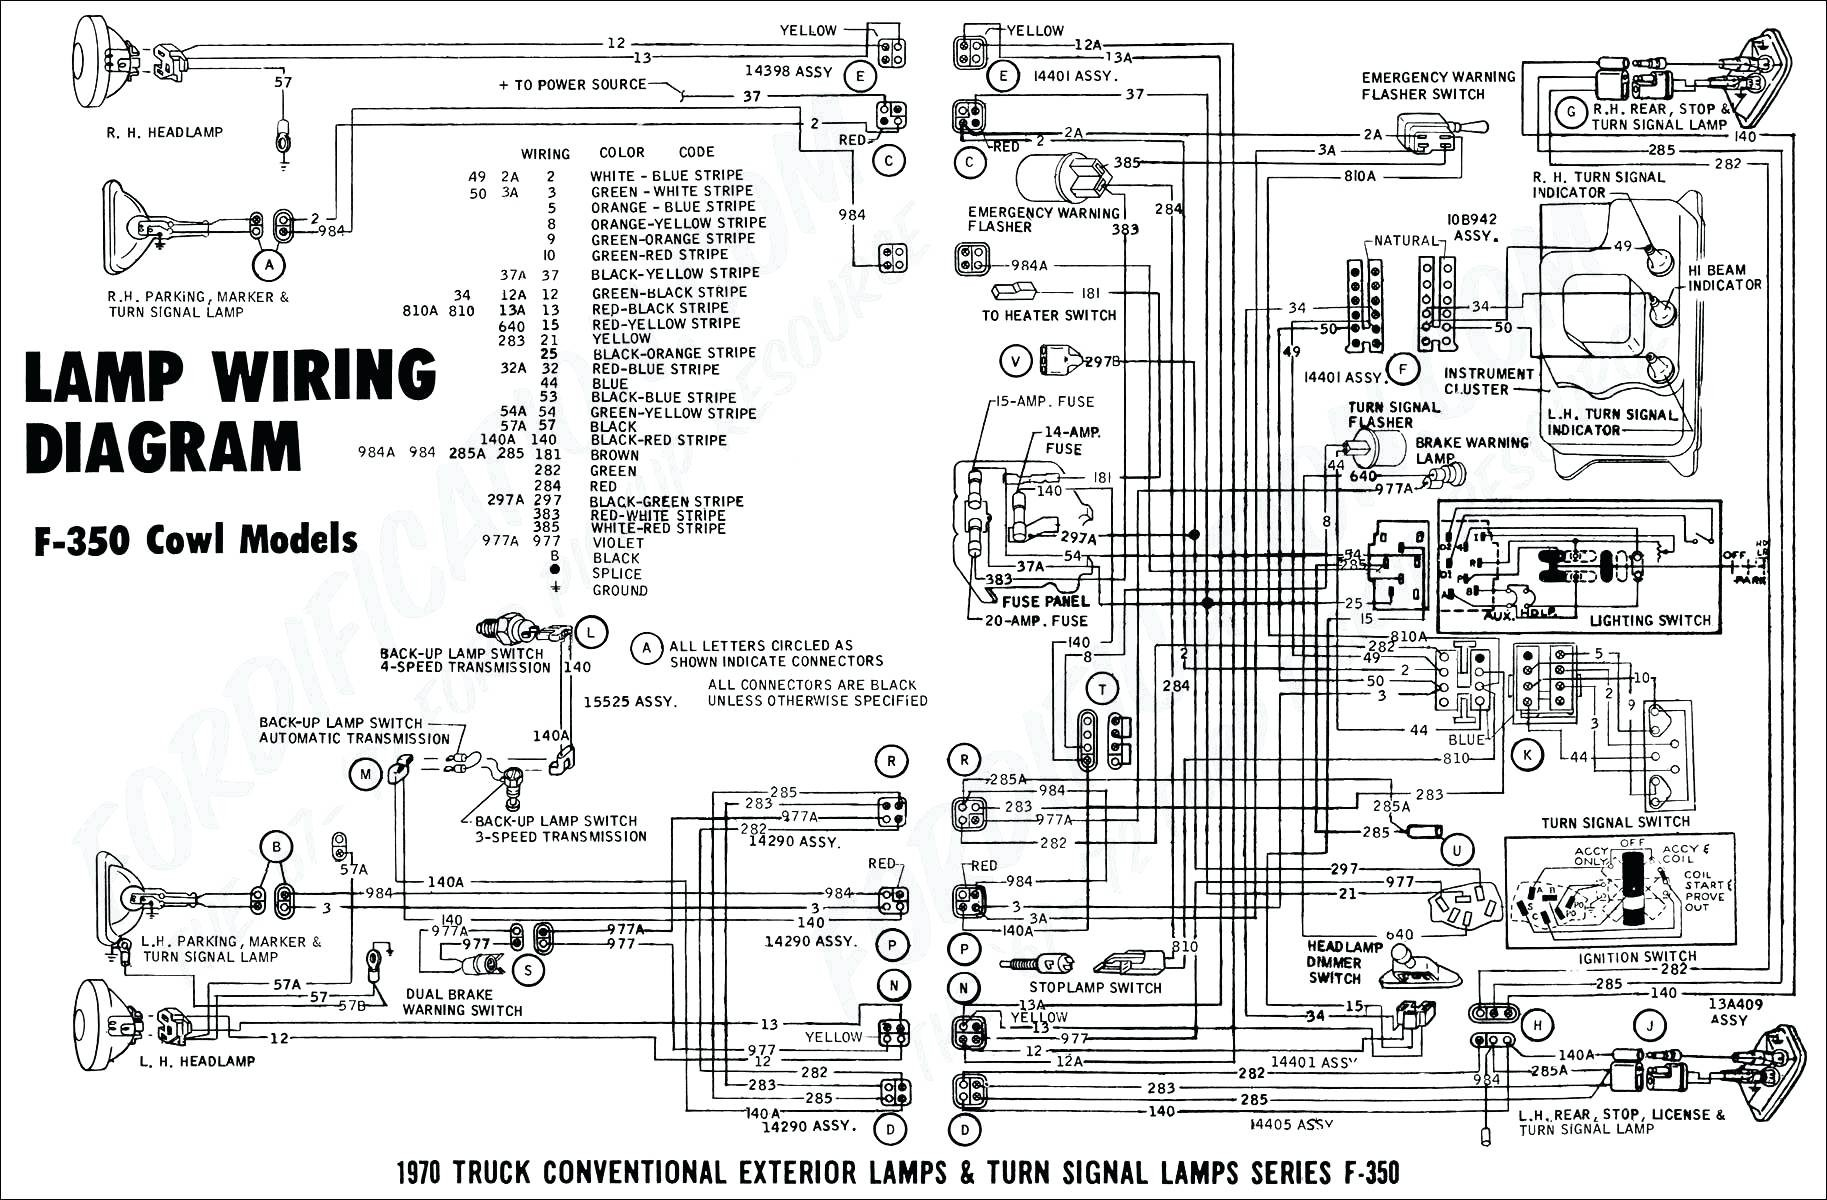 2001 ford f350 wiring diagrams - wiring diagram and drain-income -  drain-income.rennella.it  rennella.it